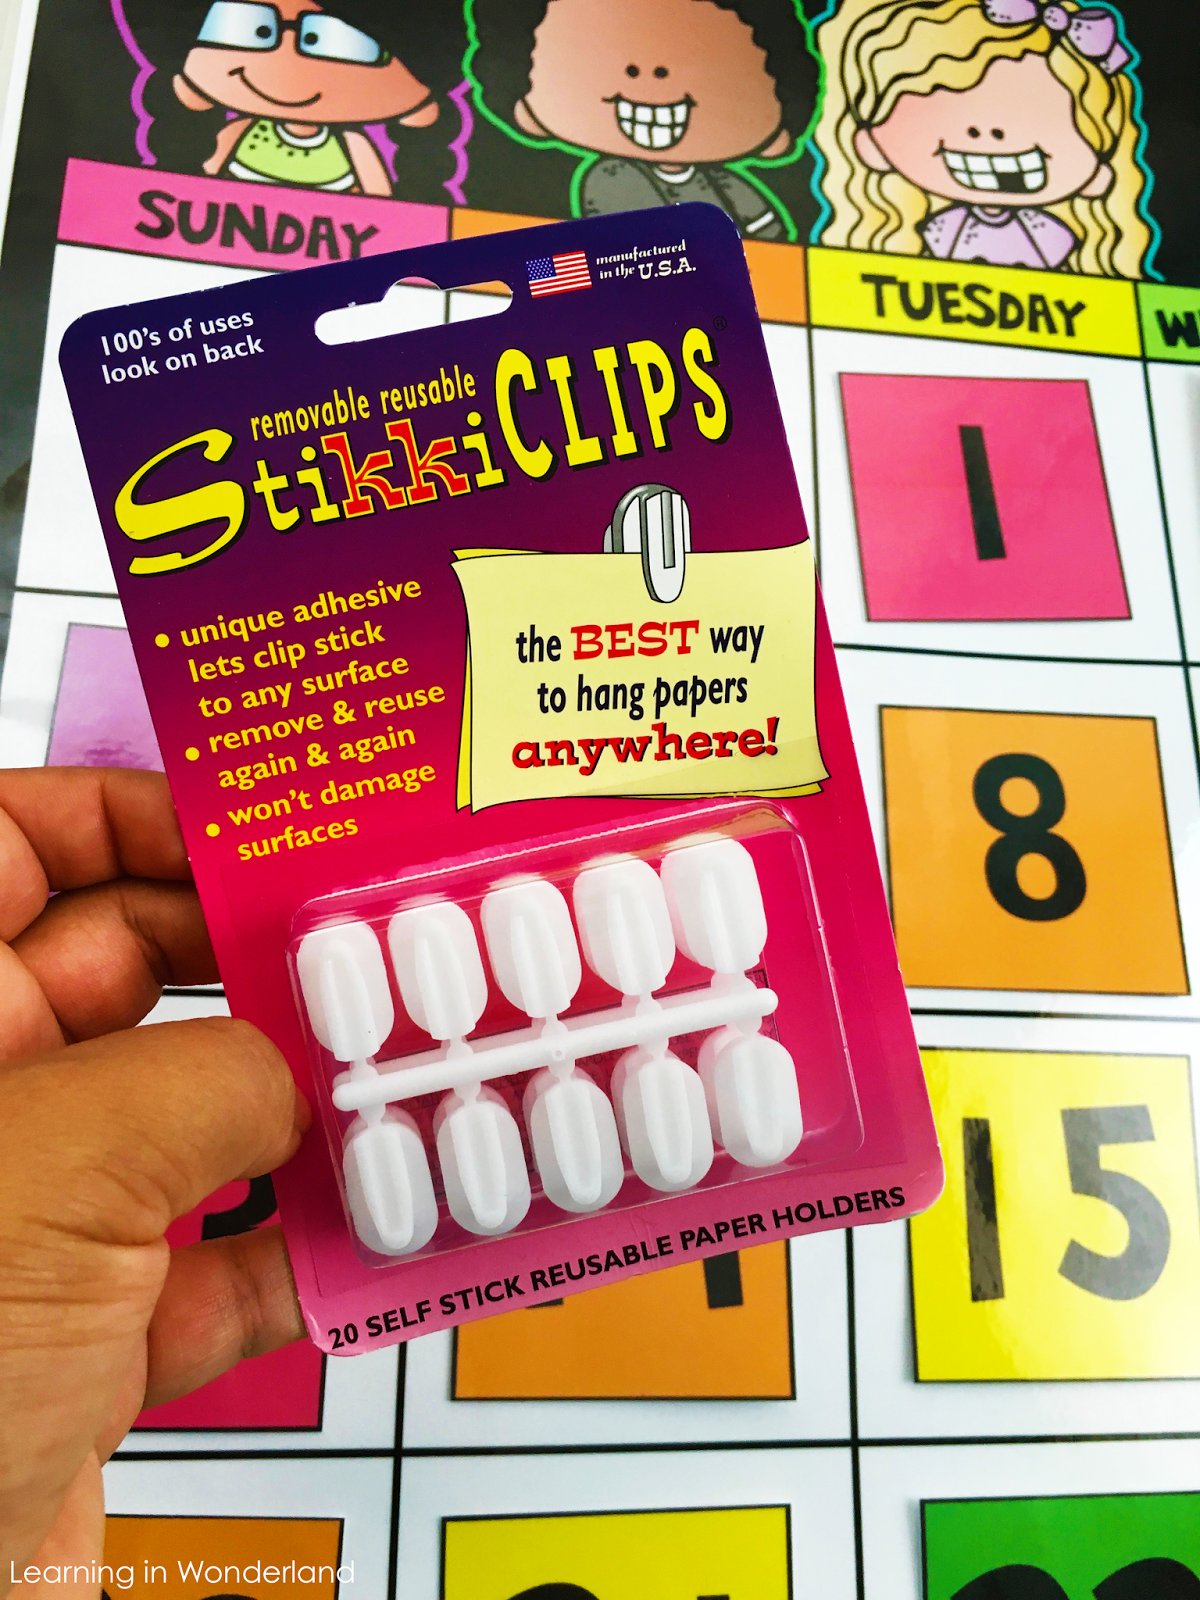 Use StikkiClips on your calendar!